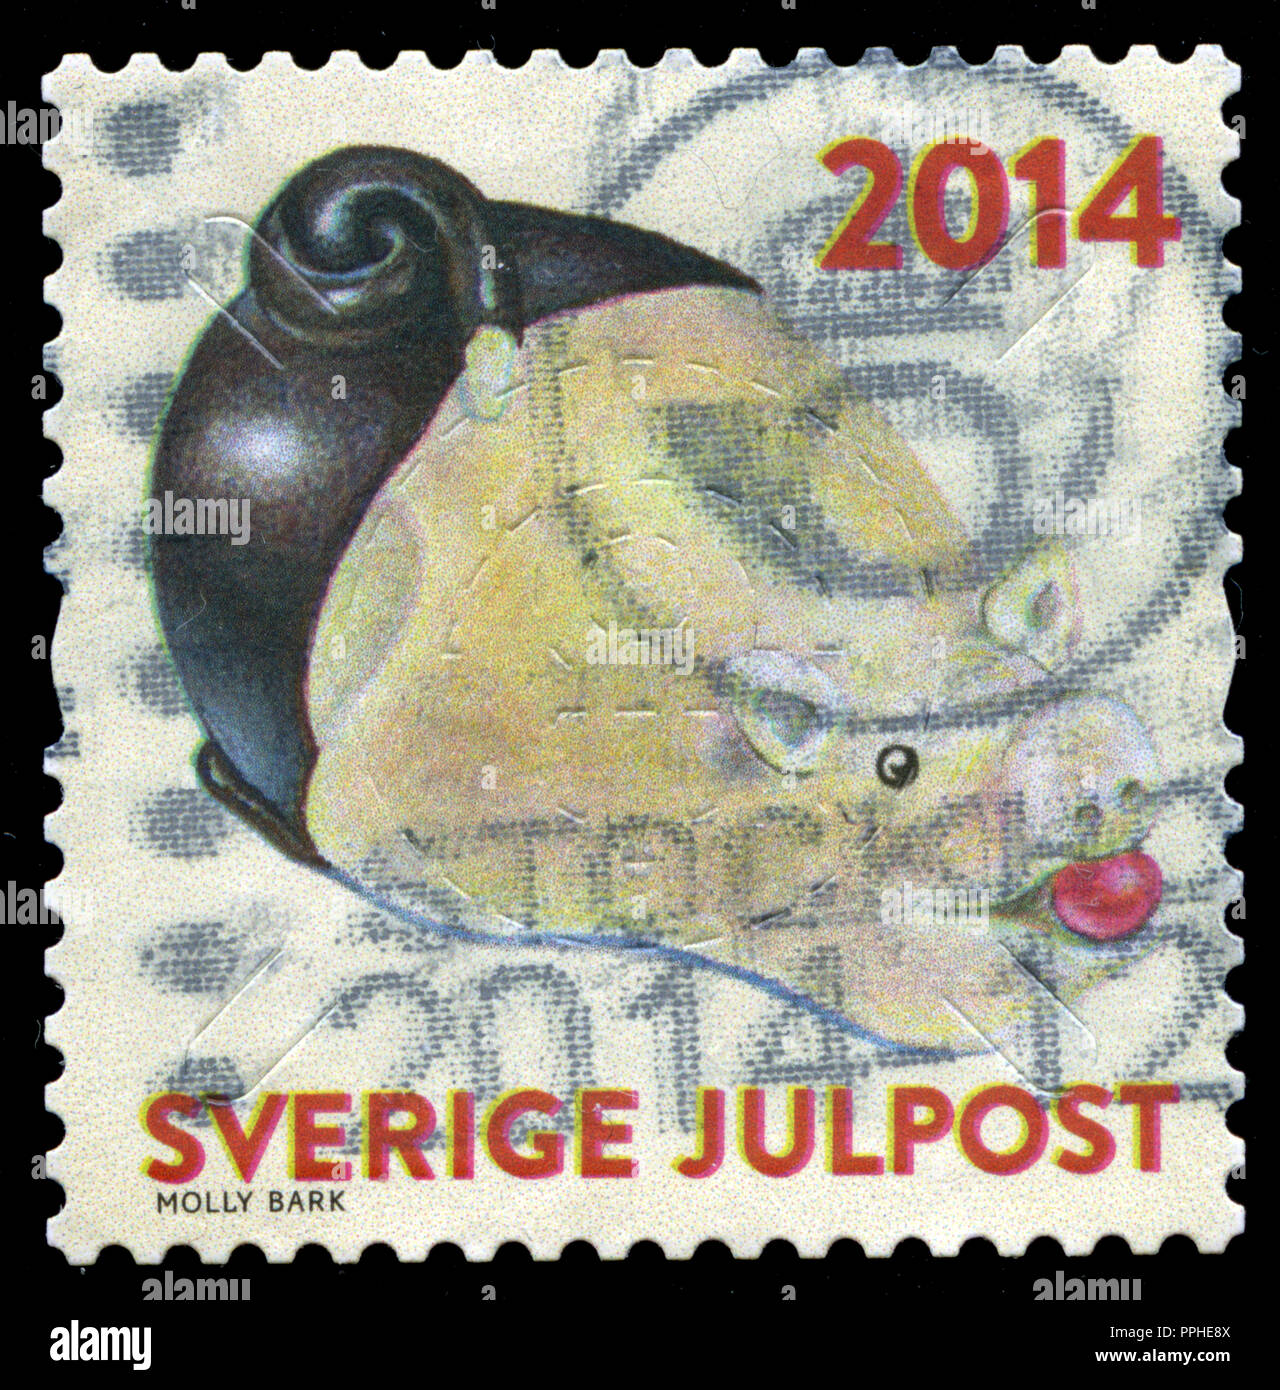 Postmarked stamp from Sweden in the Christmas 2014 series - Stock Image